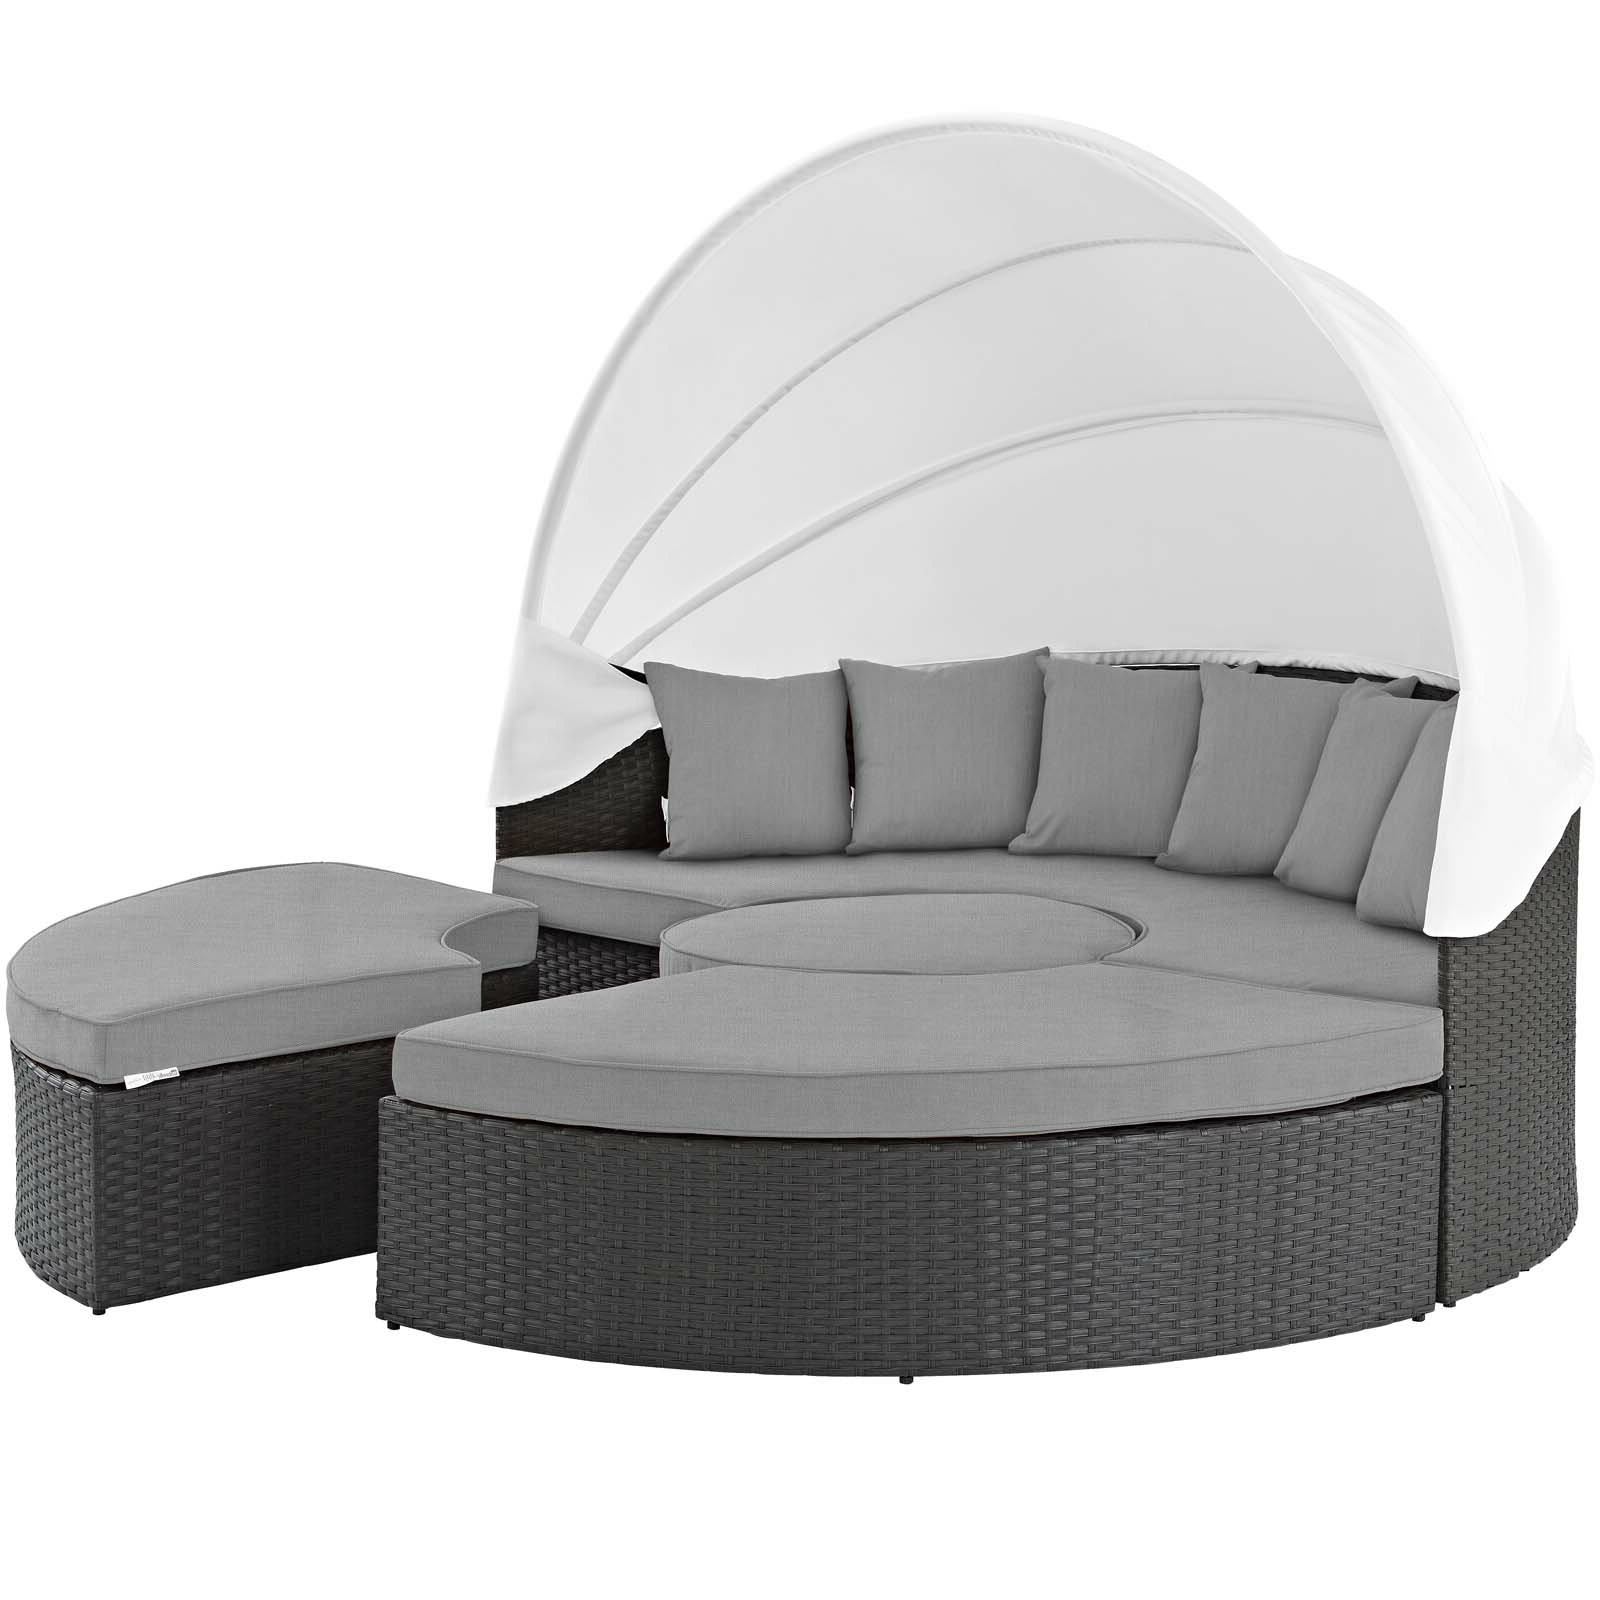 Most Recently Released Bishop Daybed Within Carrasco Patio Daybeds With Cushions (View 18 of 20)